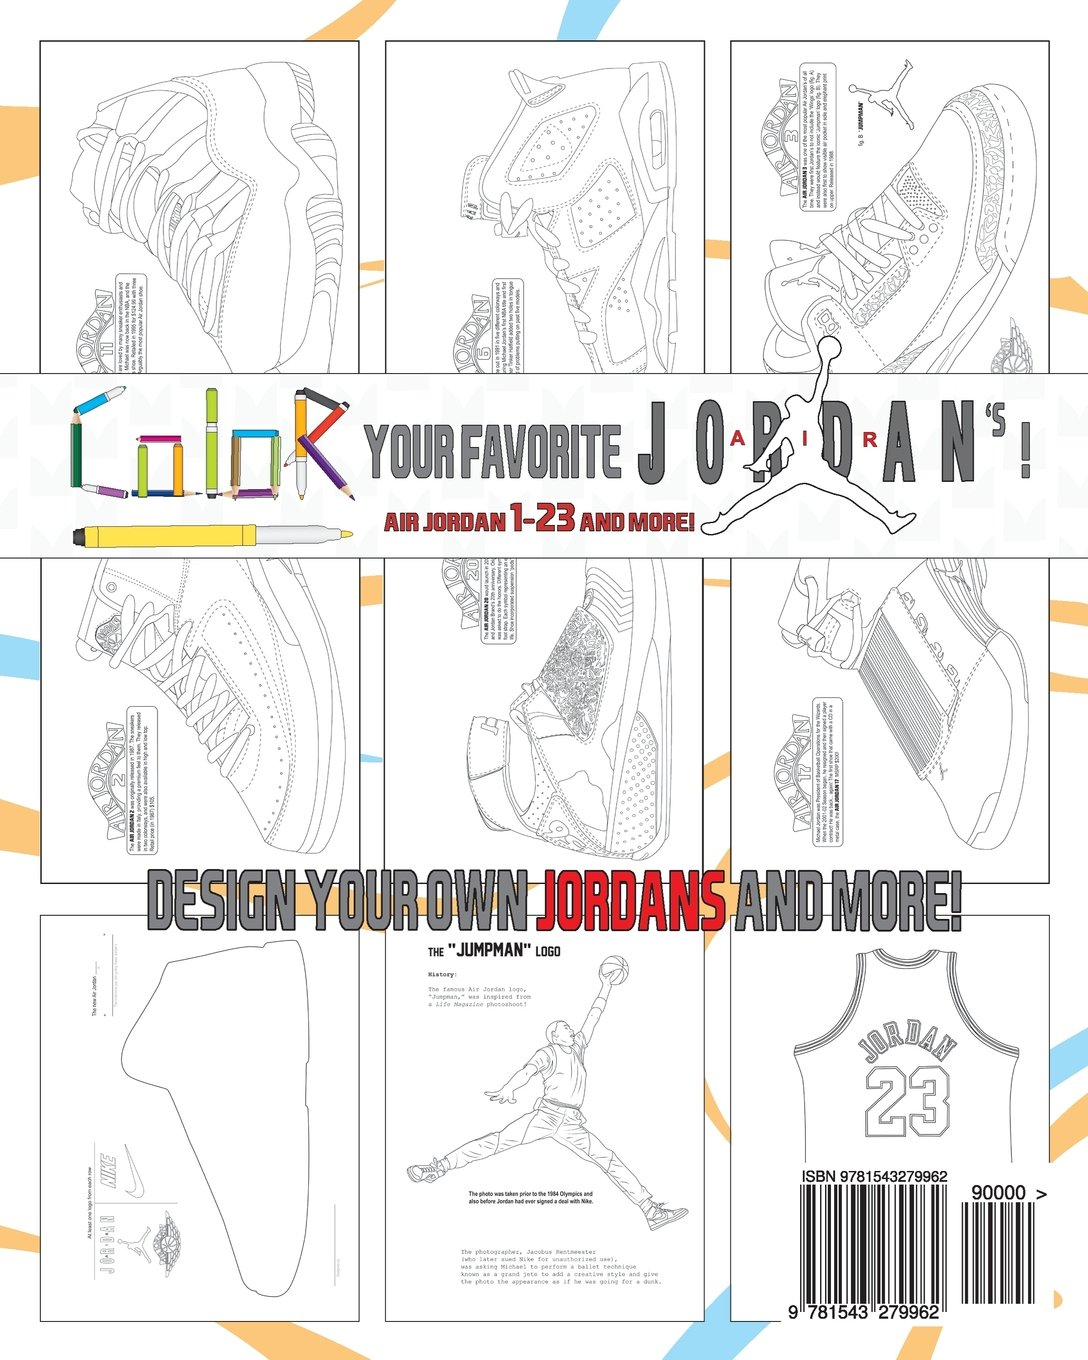 retro air jordan shoes a detailed coloring book for adults and